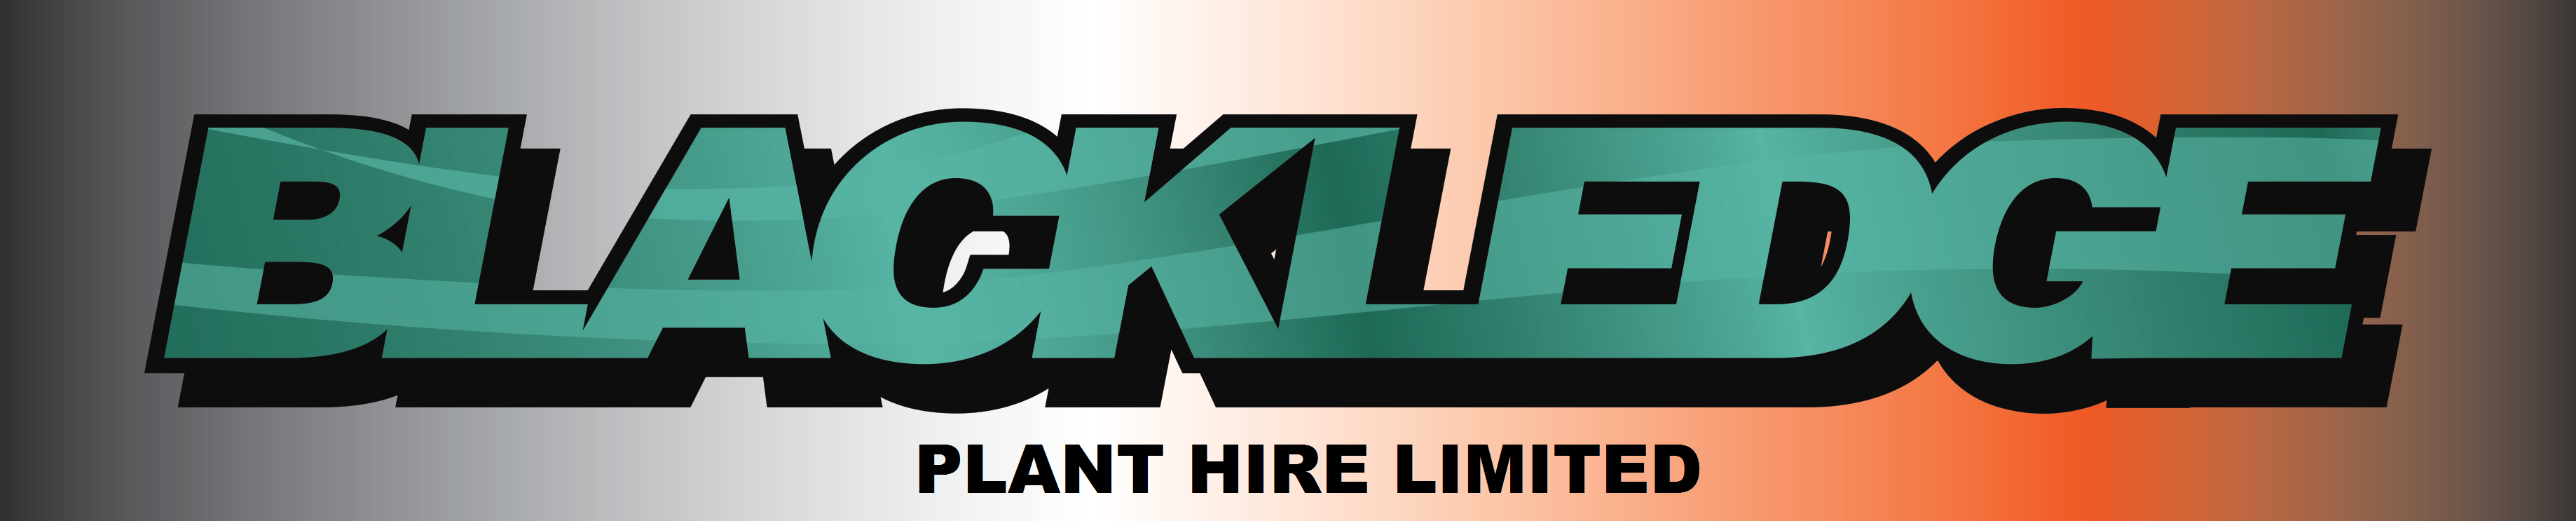 Blackledge Plant Hire Limited logo